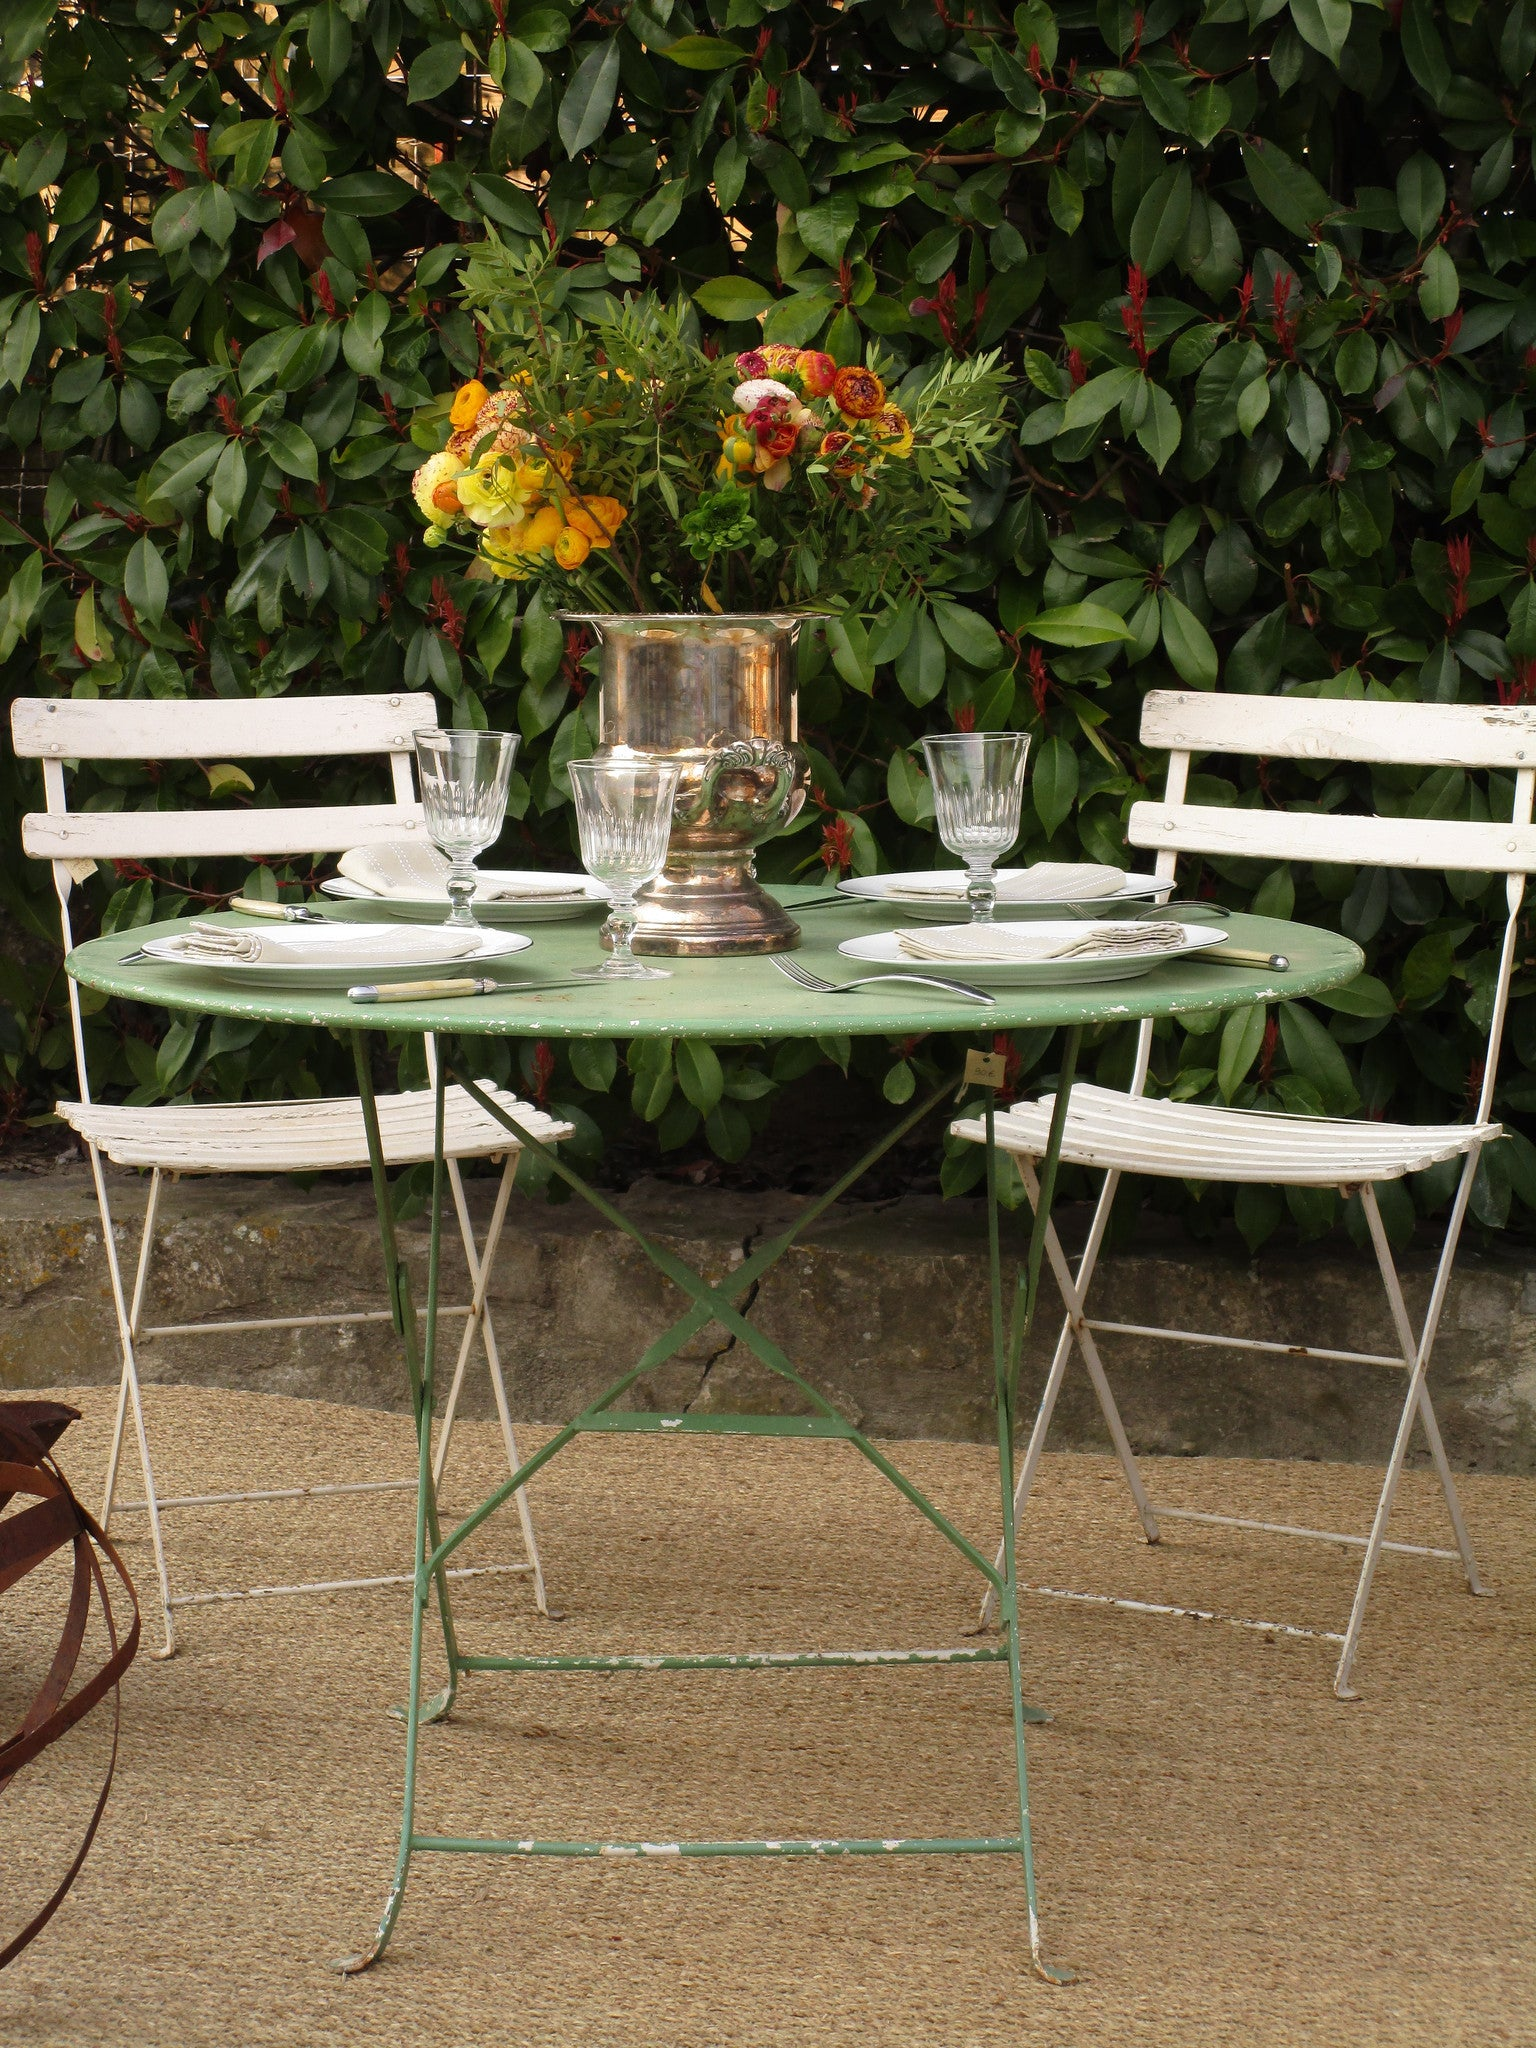 Round French folding bistro table - green four person